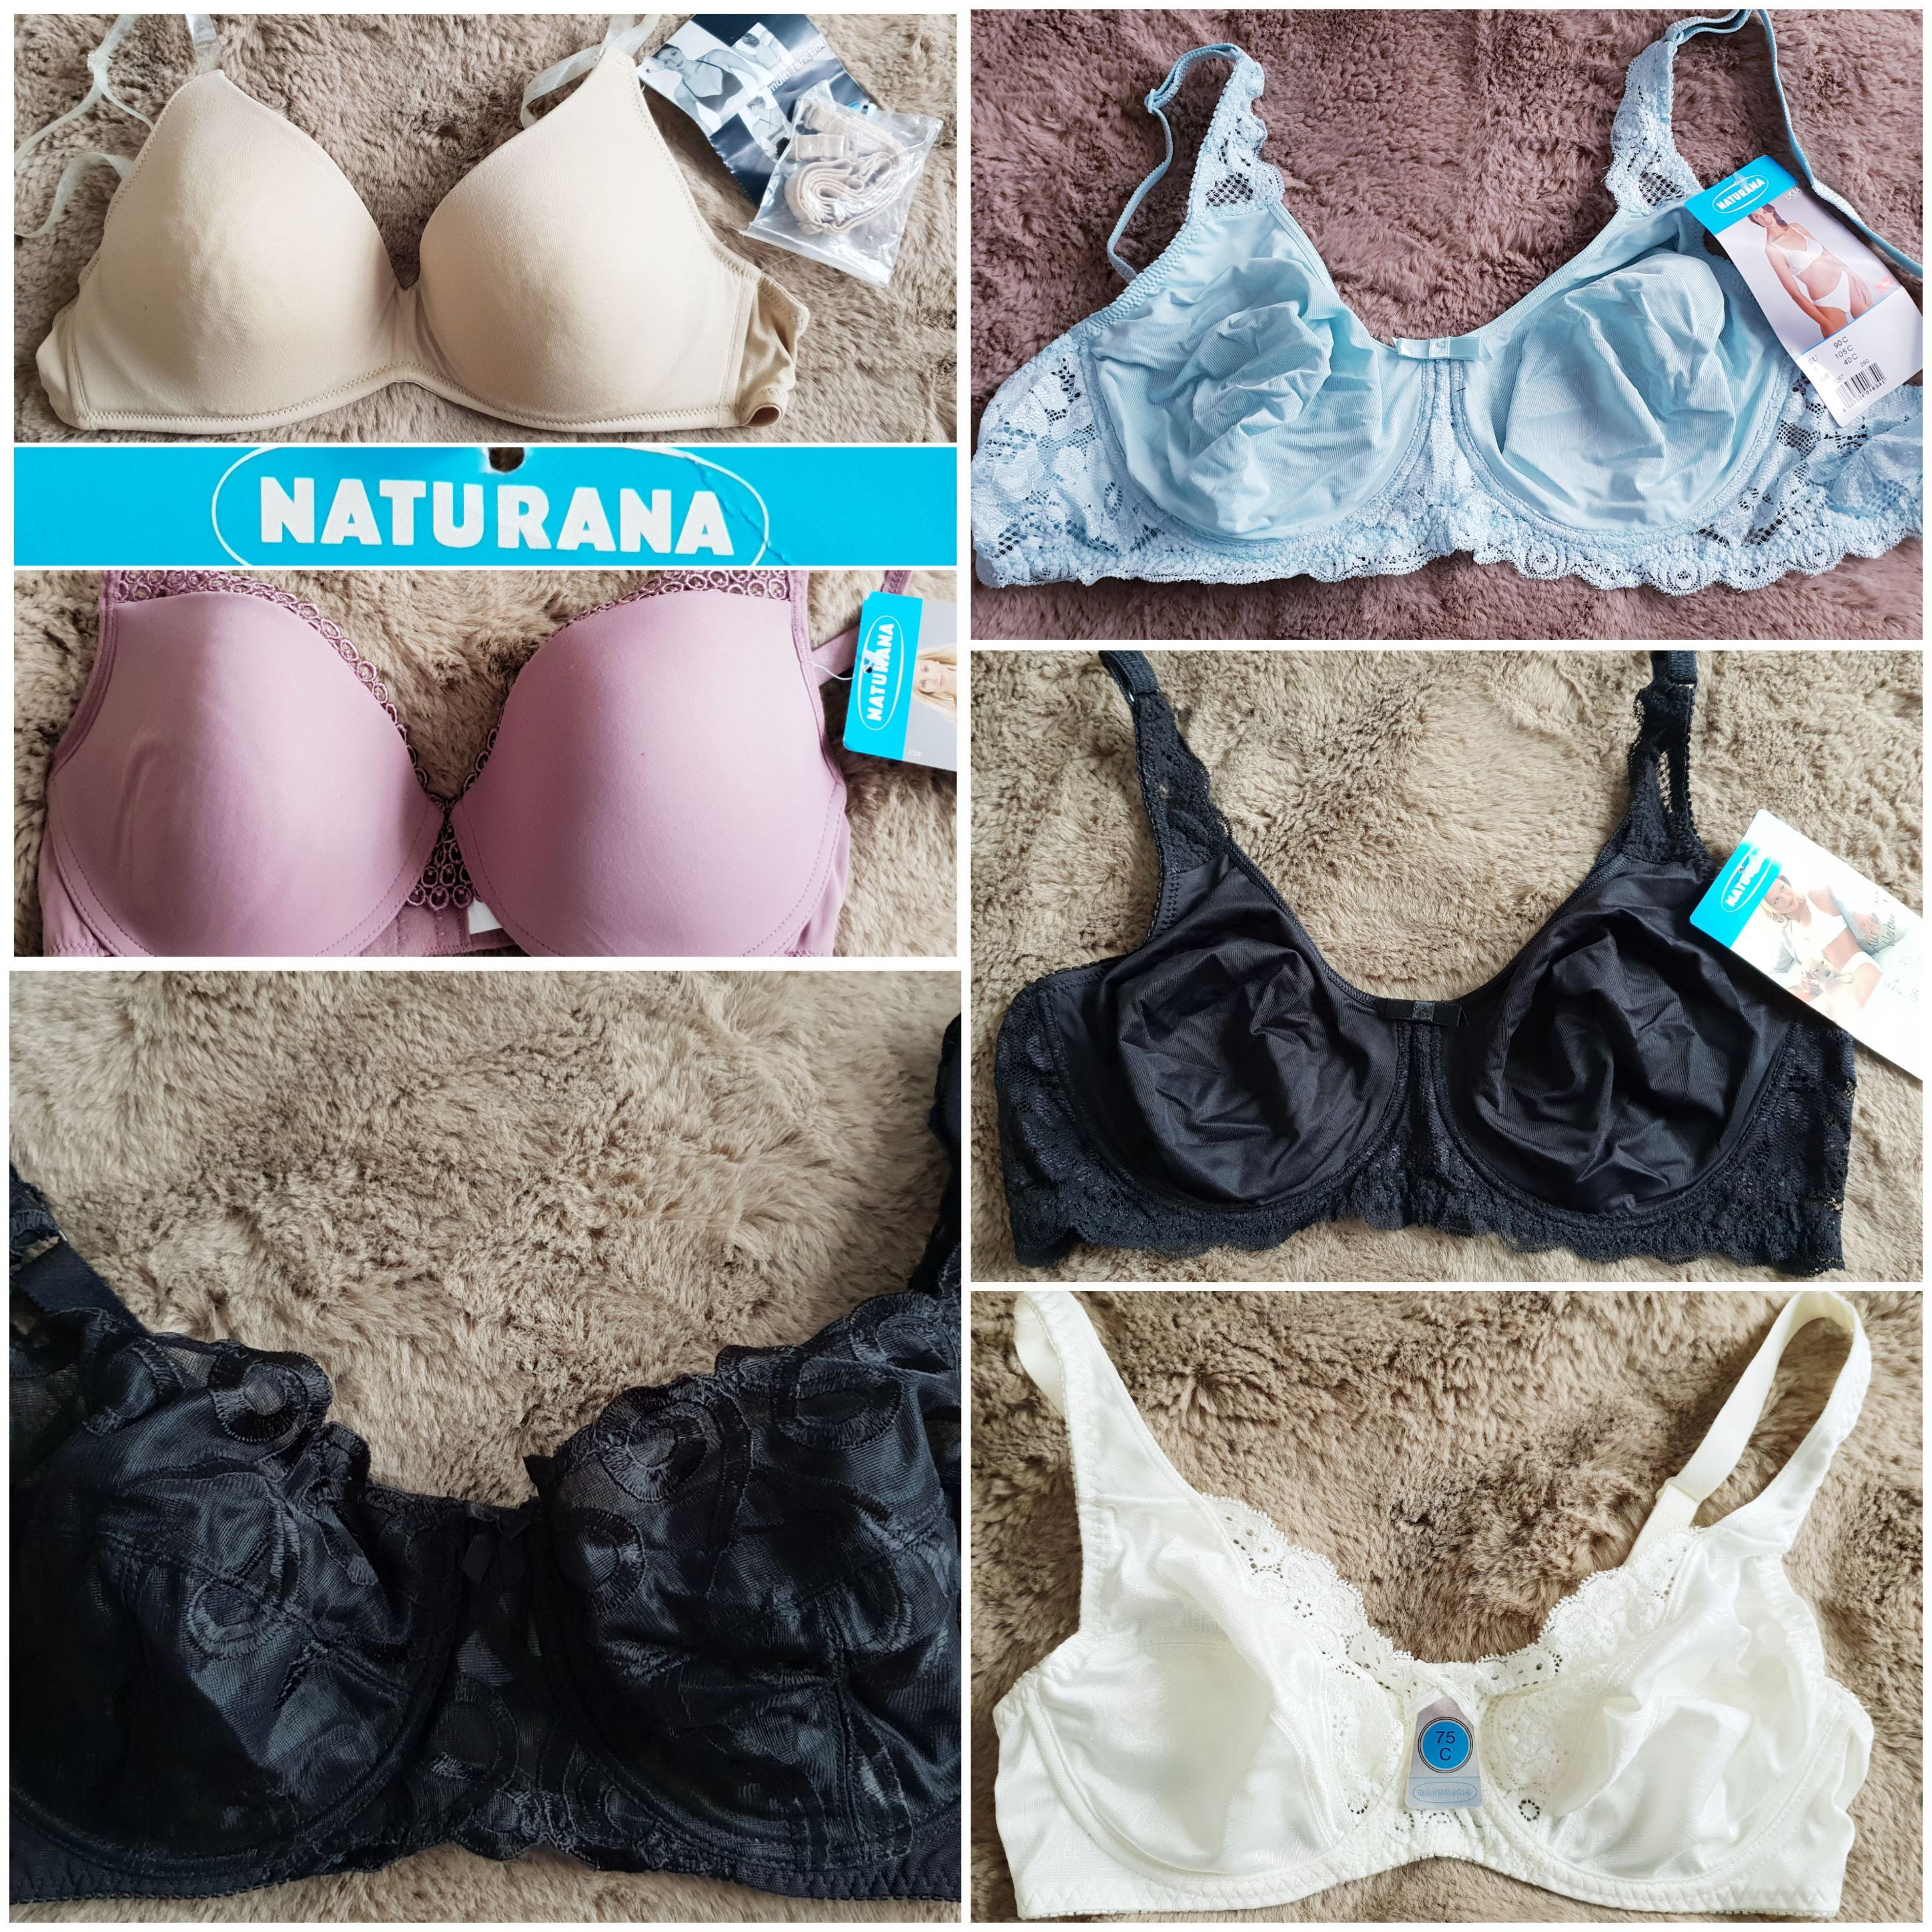 Naturana Bras Lot 29 Bras sizes 34-40 B C D E With Tags